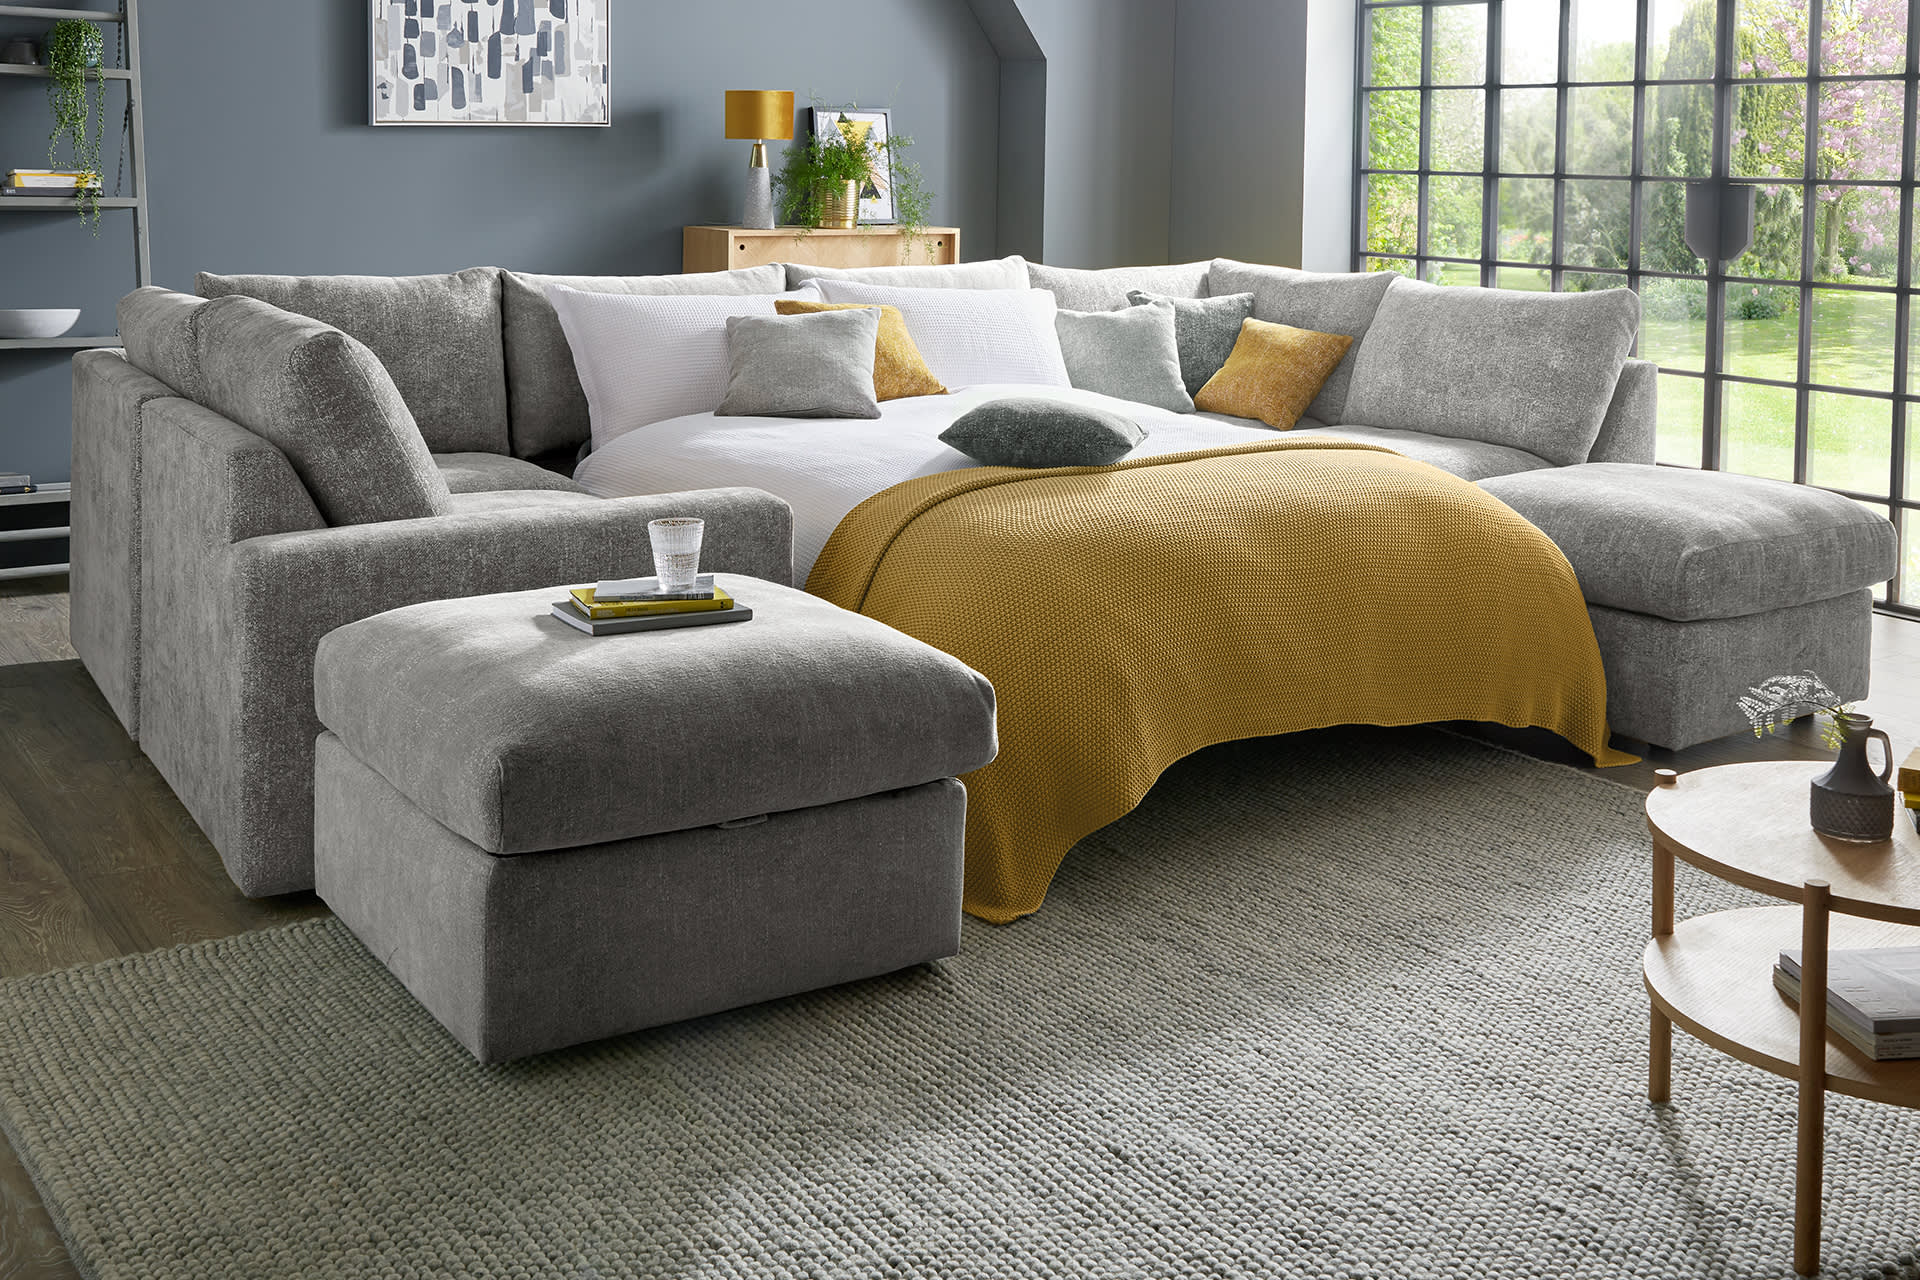 Sofa Beds Buying Guide